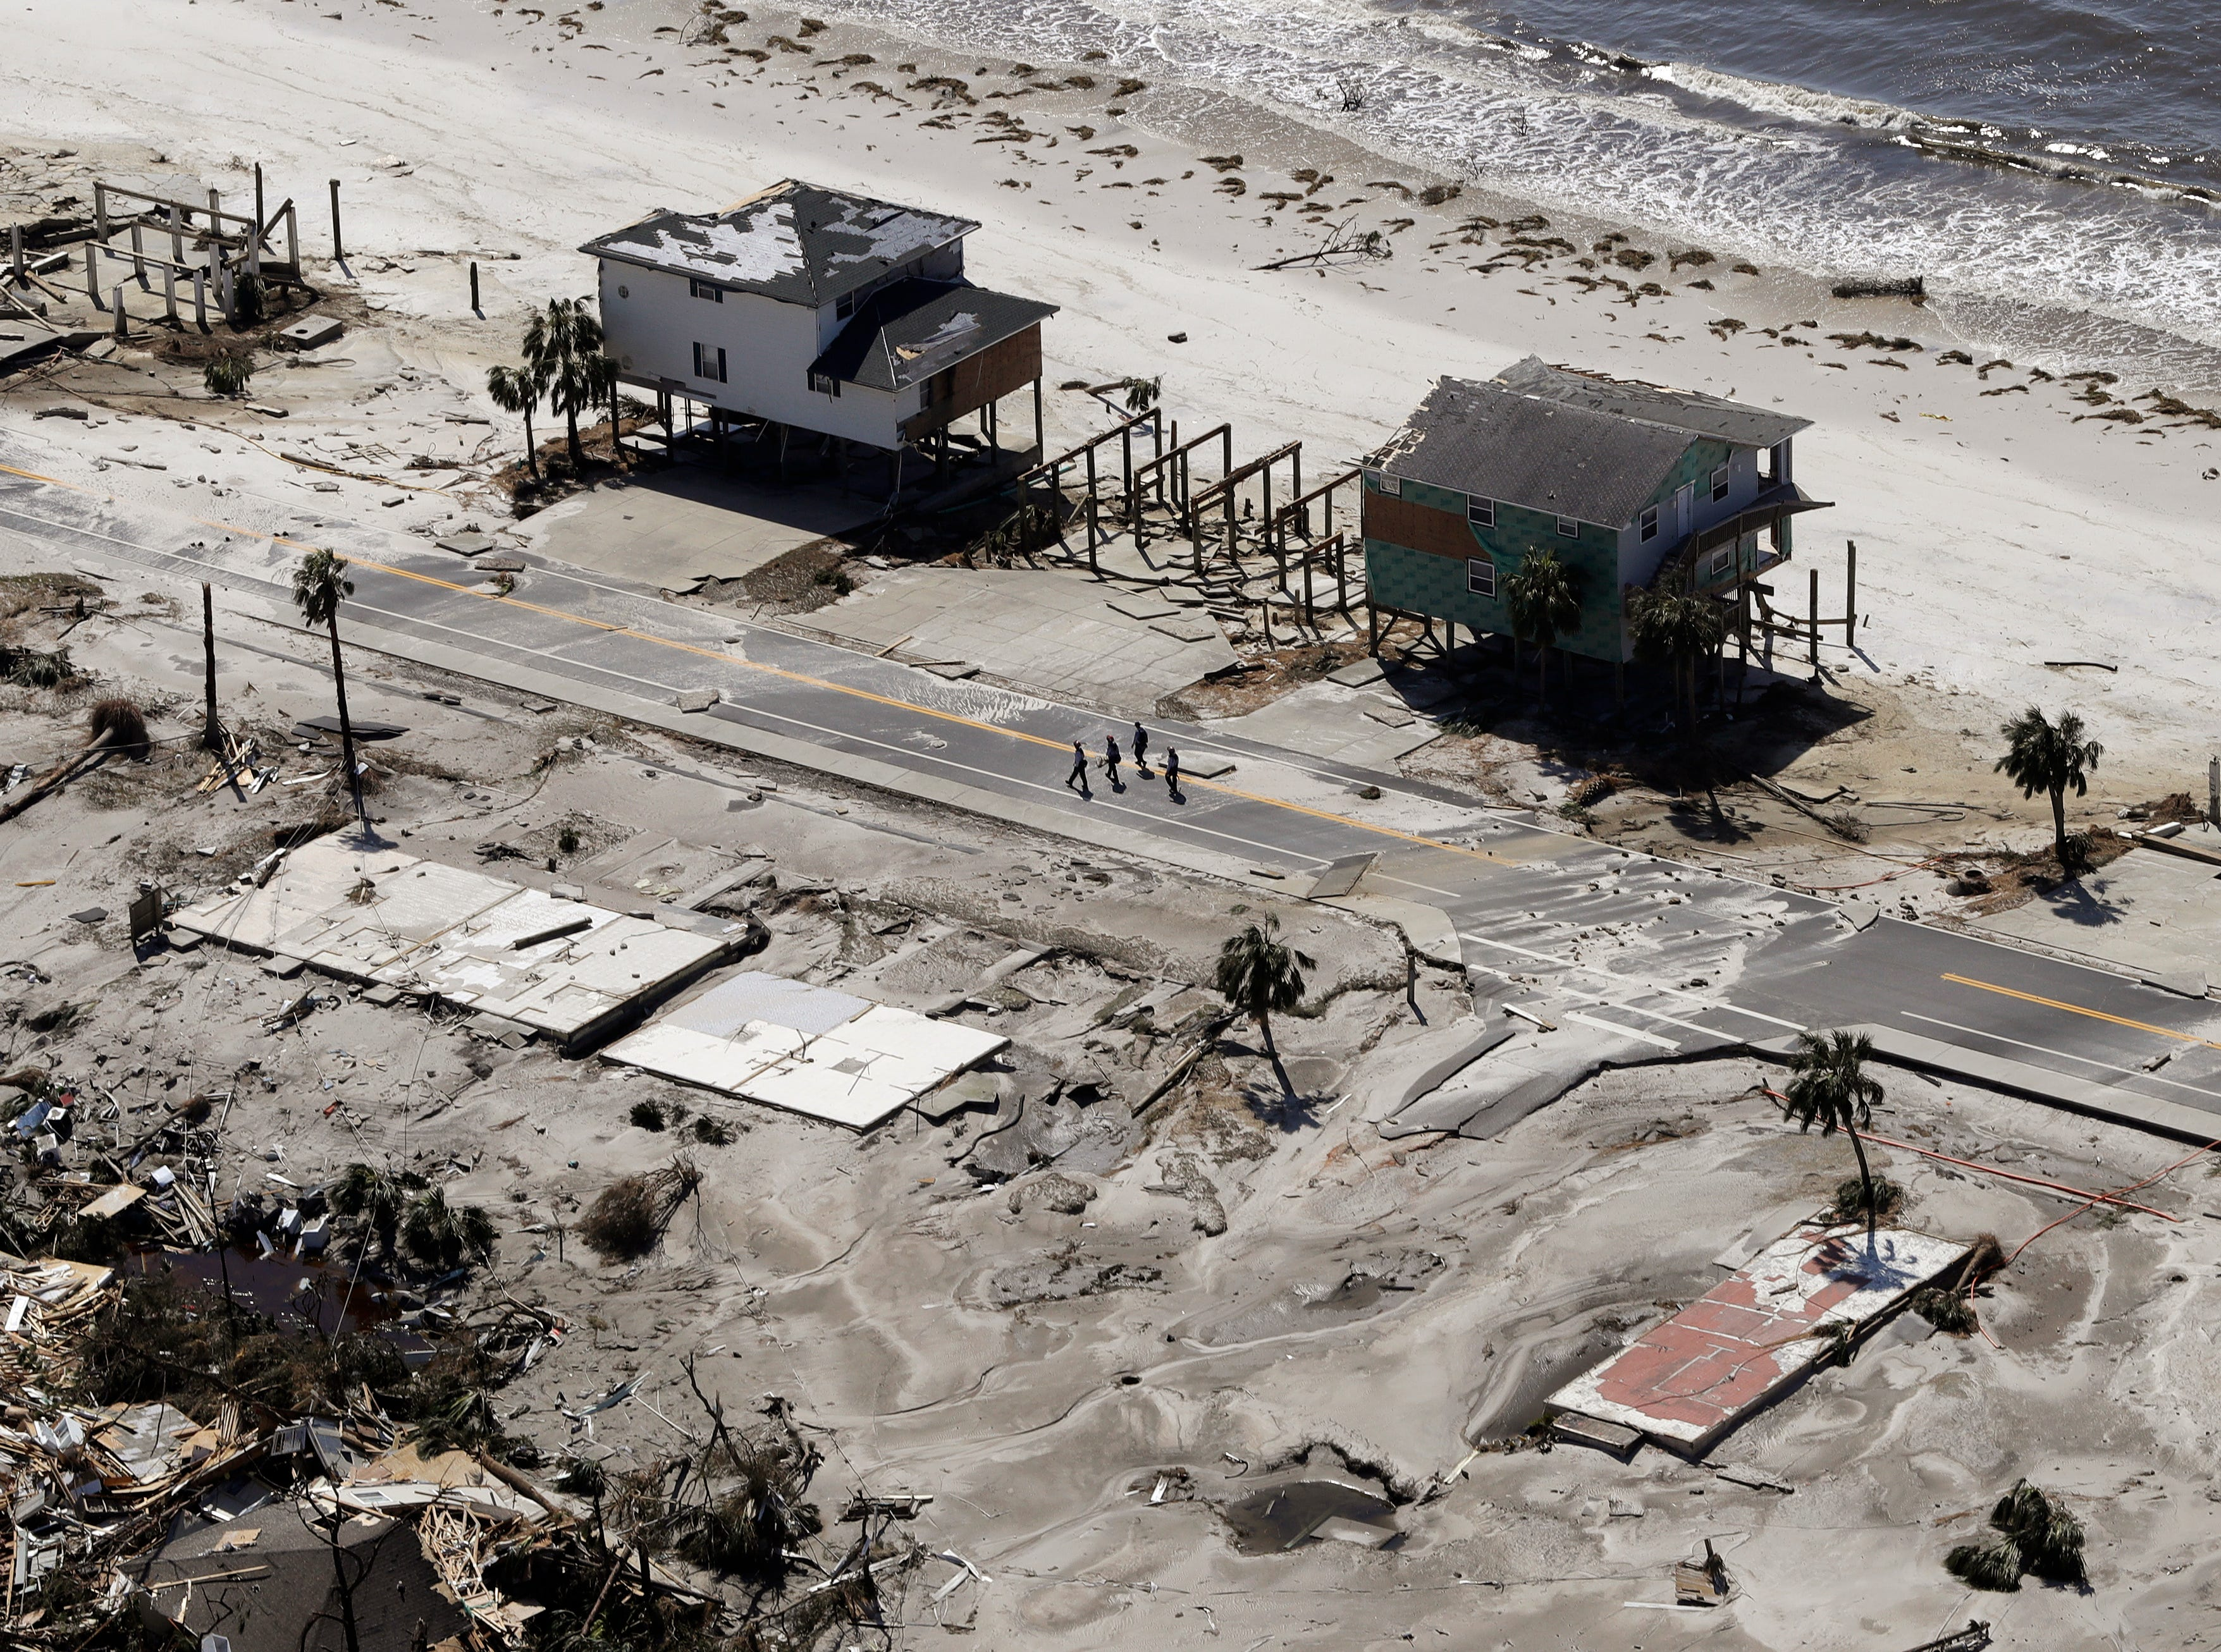 Homes are left swept off their foundations from the effects of Hurricane Michael, Thursday, Oct. 11, 2018, in Mexico Beach, Fla.    Michael made landfall Wednesday as a Category 4 hurricane with 155 mph (250 kph) winds and a storm surge of 9 feet (2.7 meters). (AP Photo/Chris O'Meara)